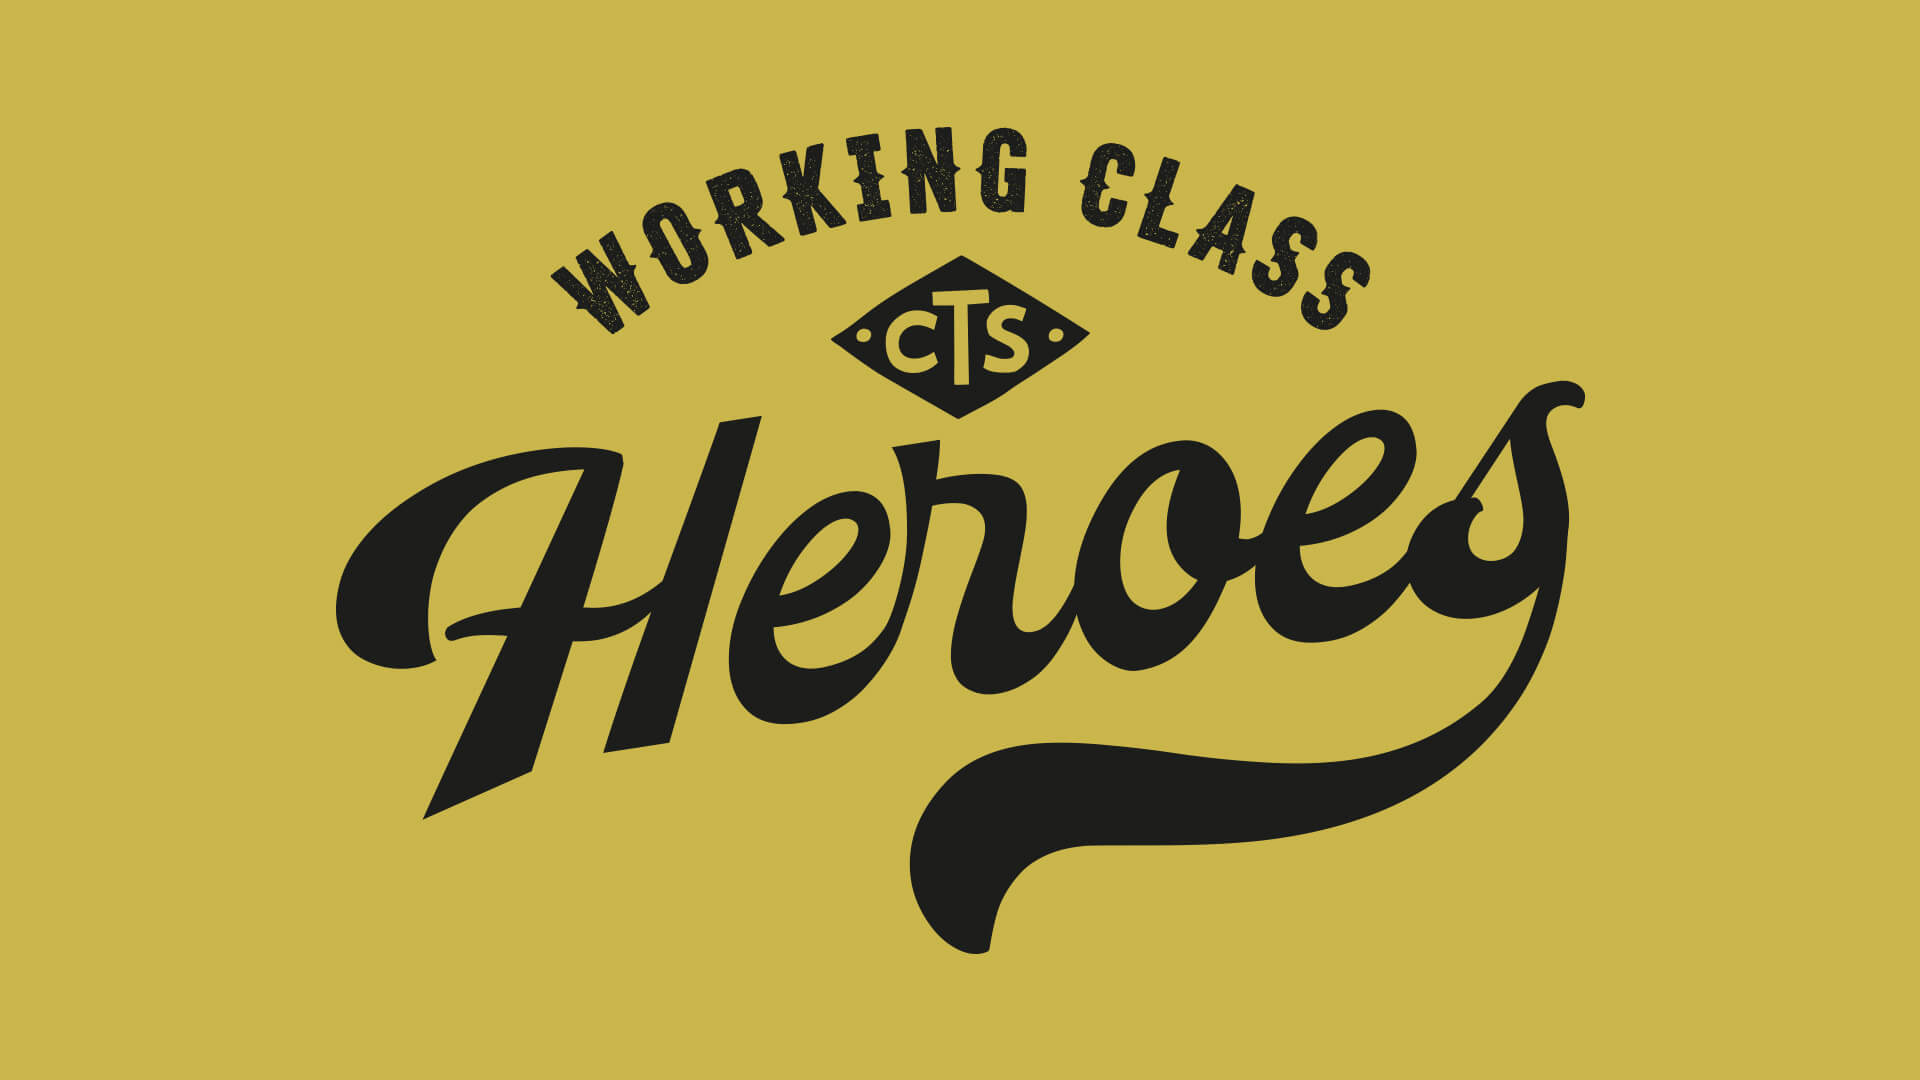 CTS - Working Class Heroes